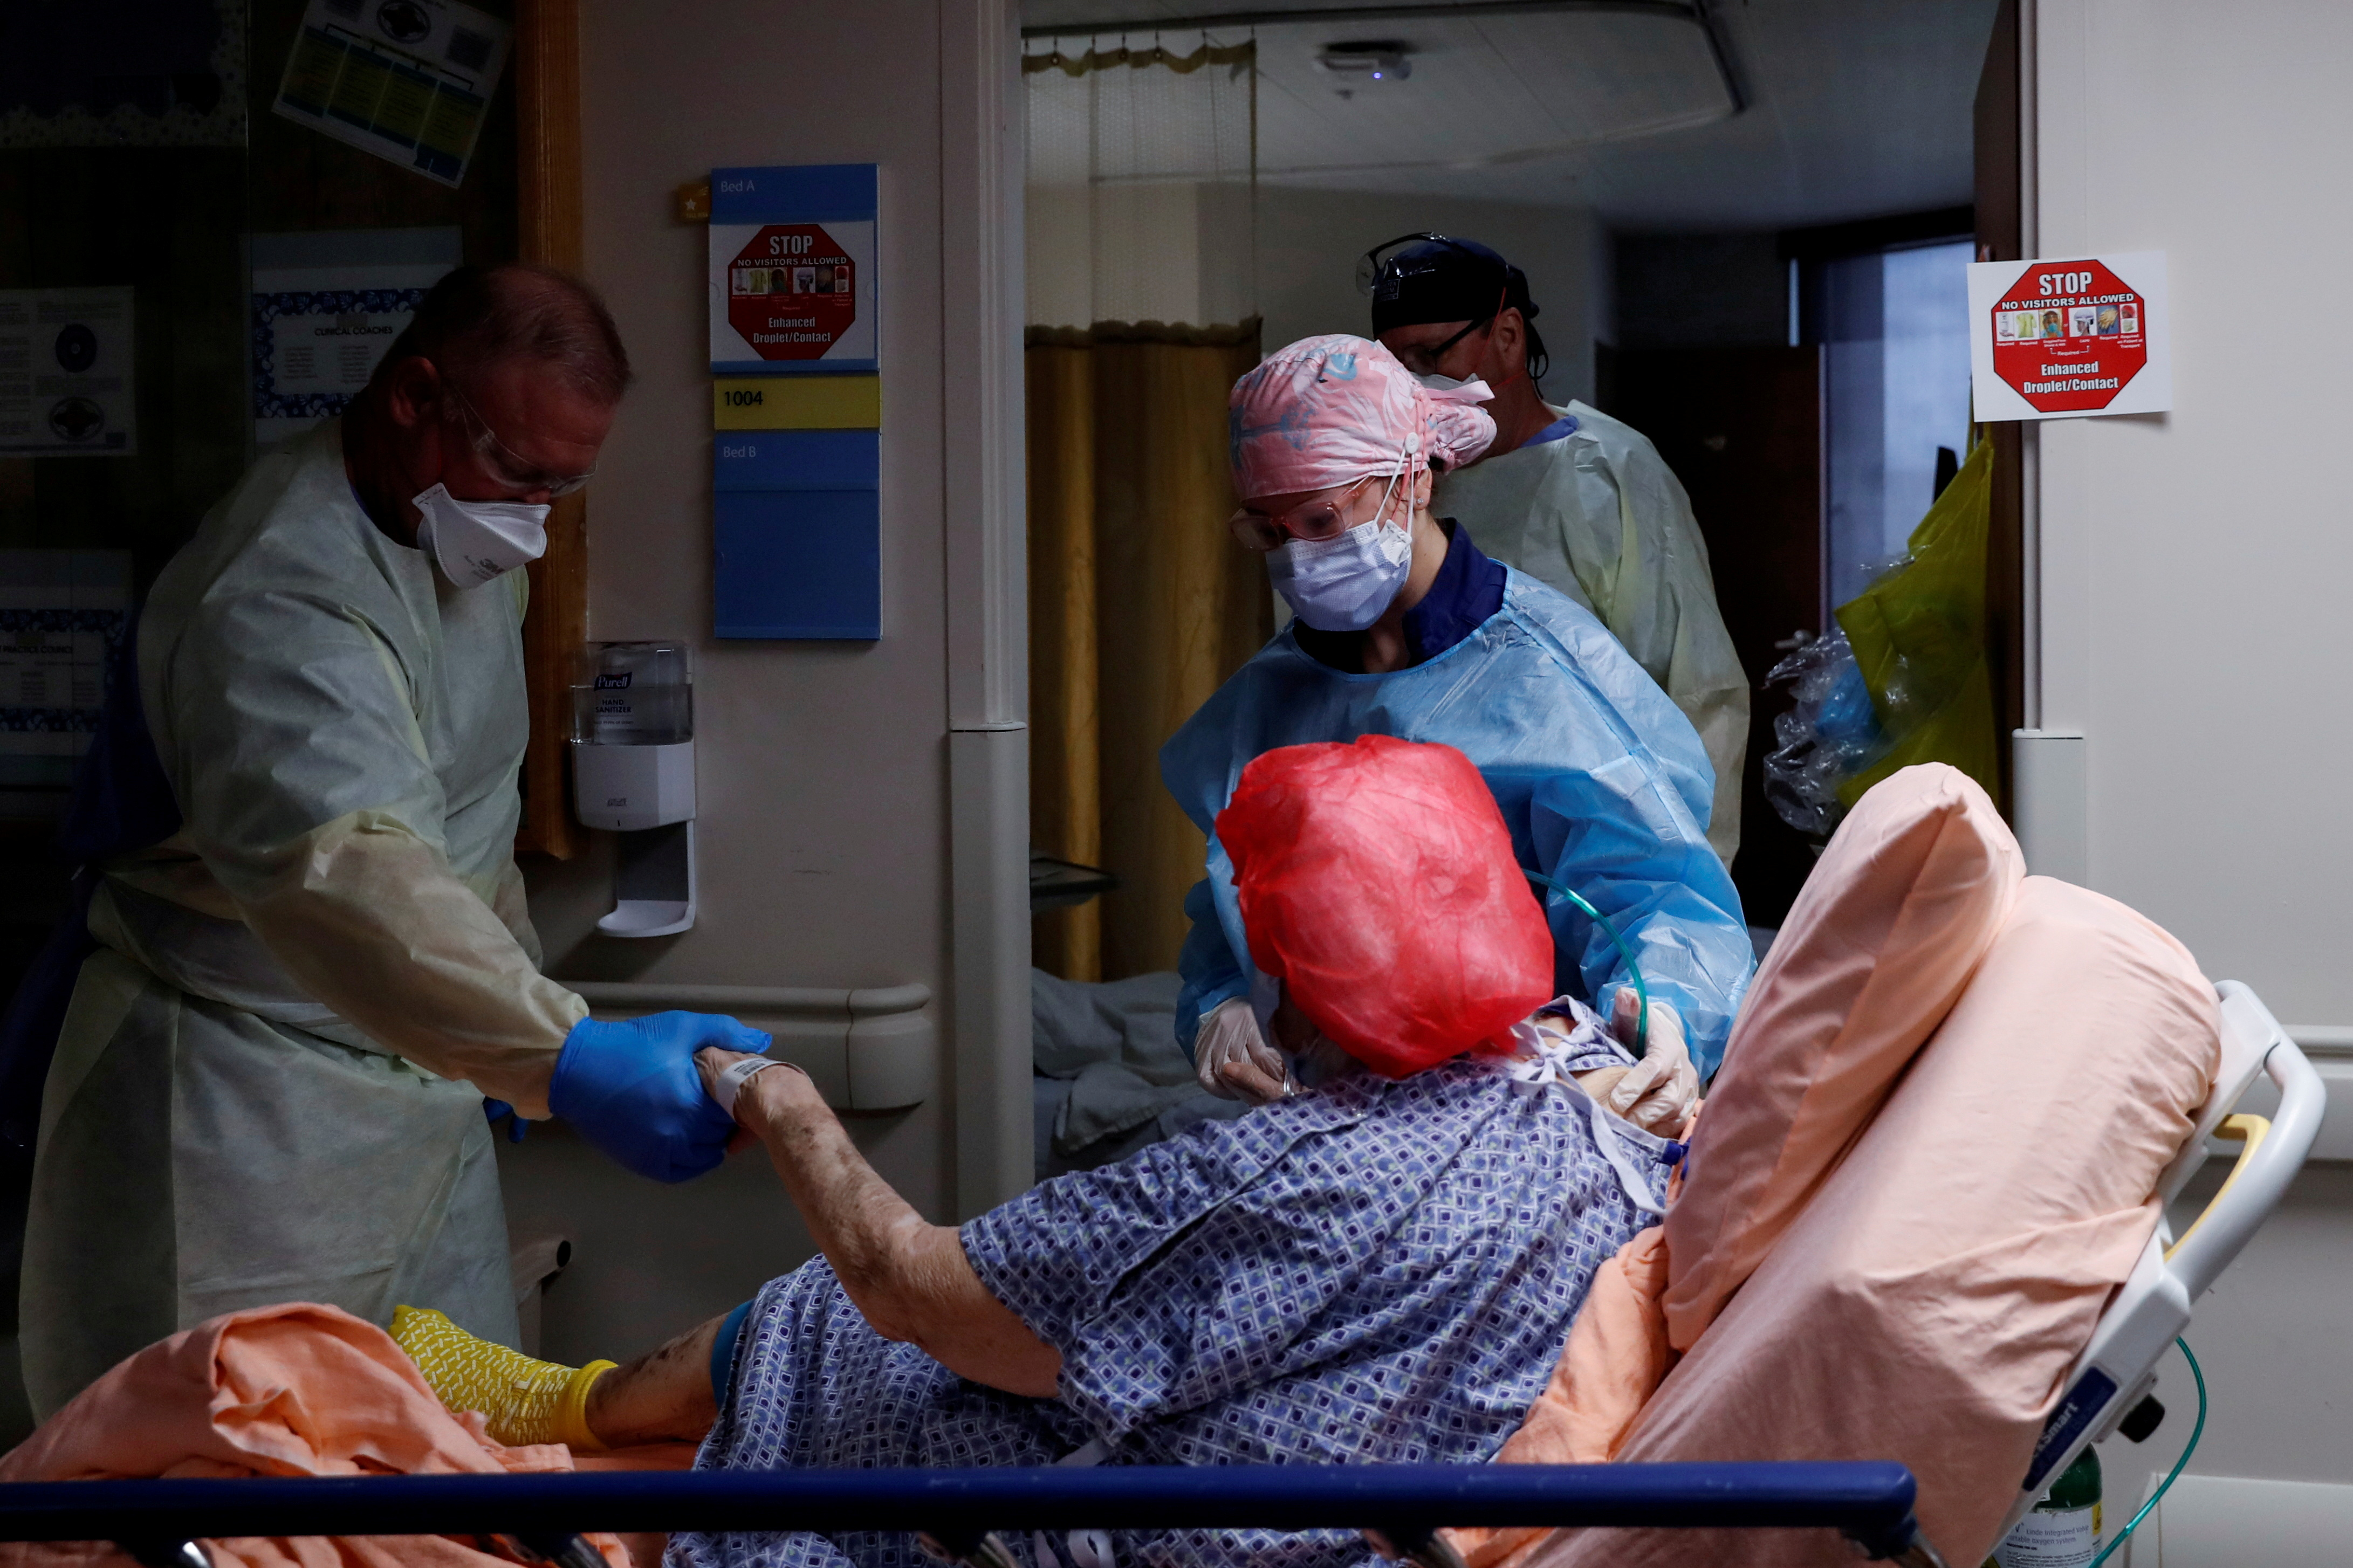 Members of a COVID medical team transport a coronavirus disease (COVID-19) positive patient to their room on the COVID medical unit at Sarasota Memorial Hospital in Sarasota, Florida, U.S., September 21, 2021. REUTERS/Shannon Stapleton/File Photo